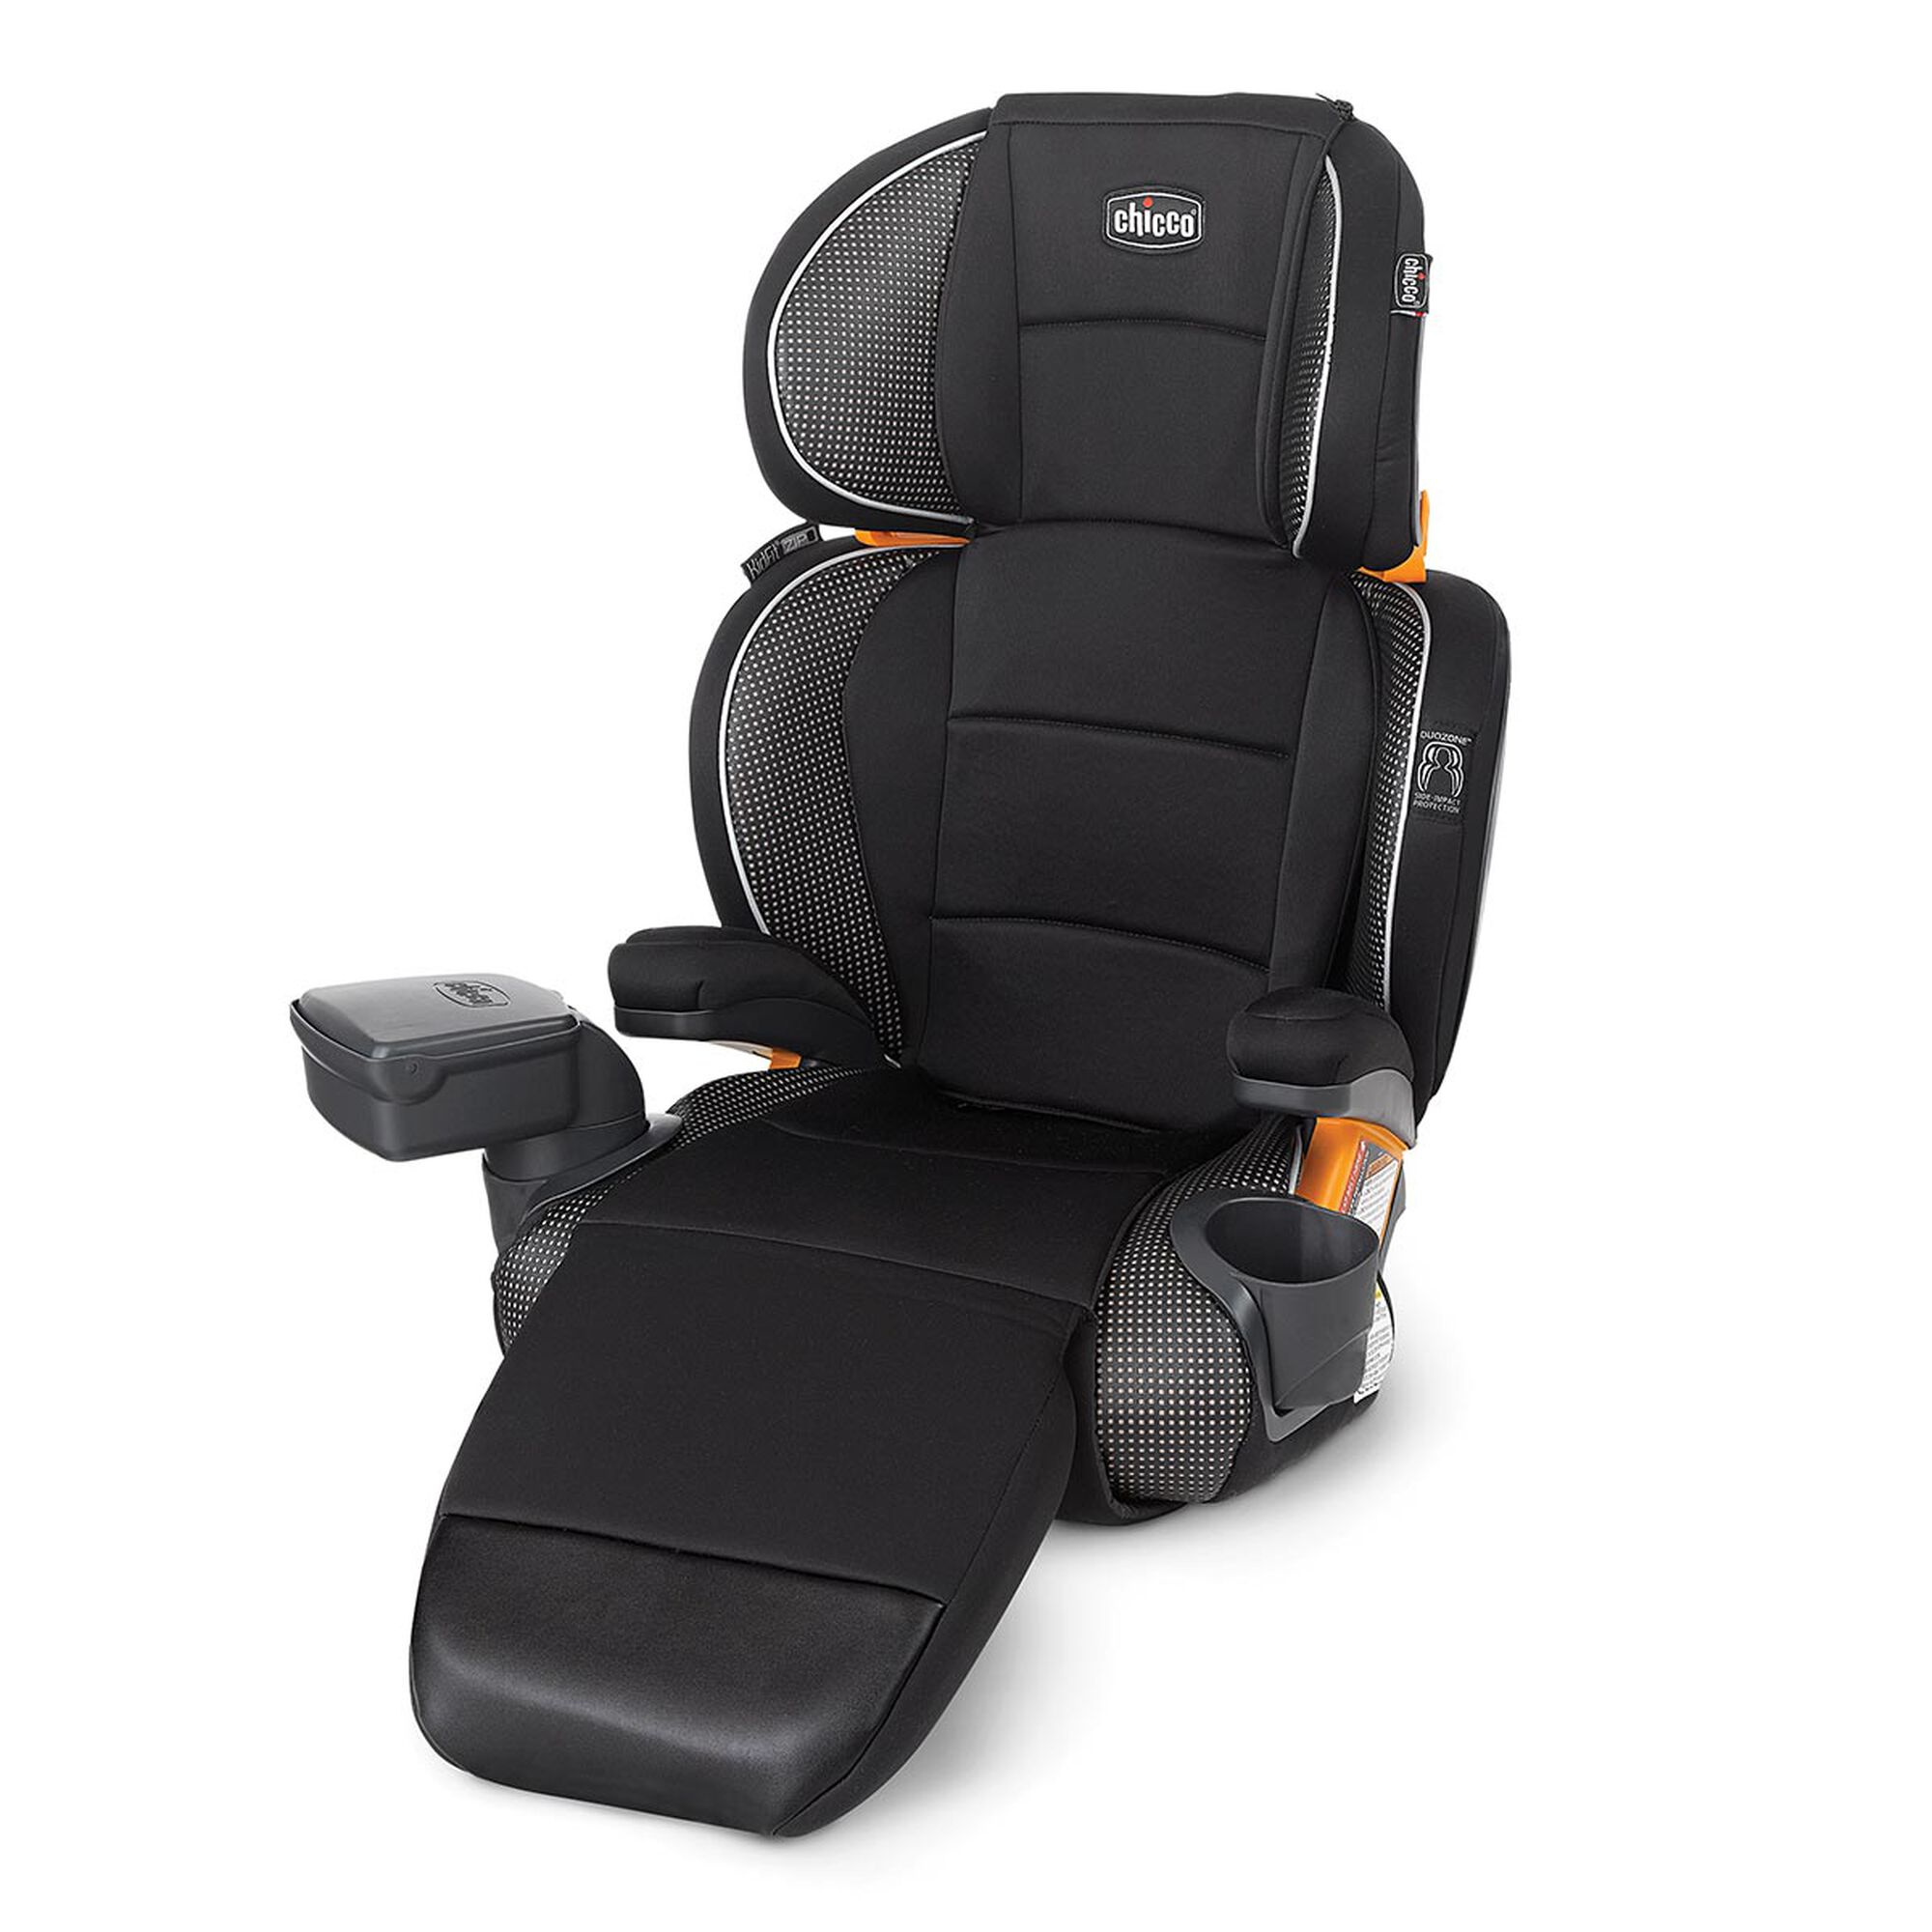 kidfit zip luxe 2 in 1 belt positioning booster car seat dolce chicco. Black Bedroom Furniture Sets. Home Design Ideas